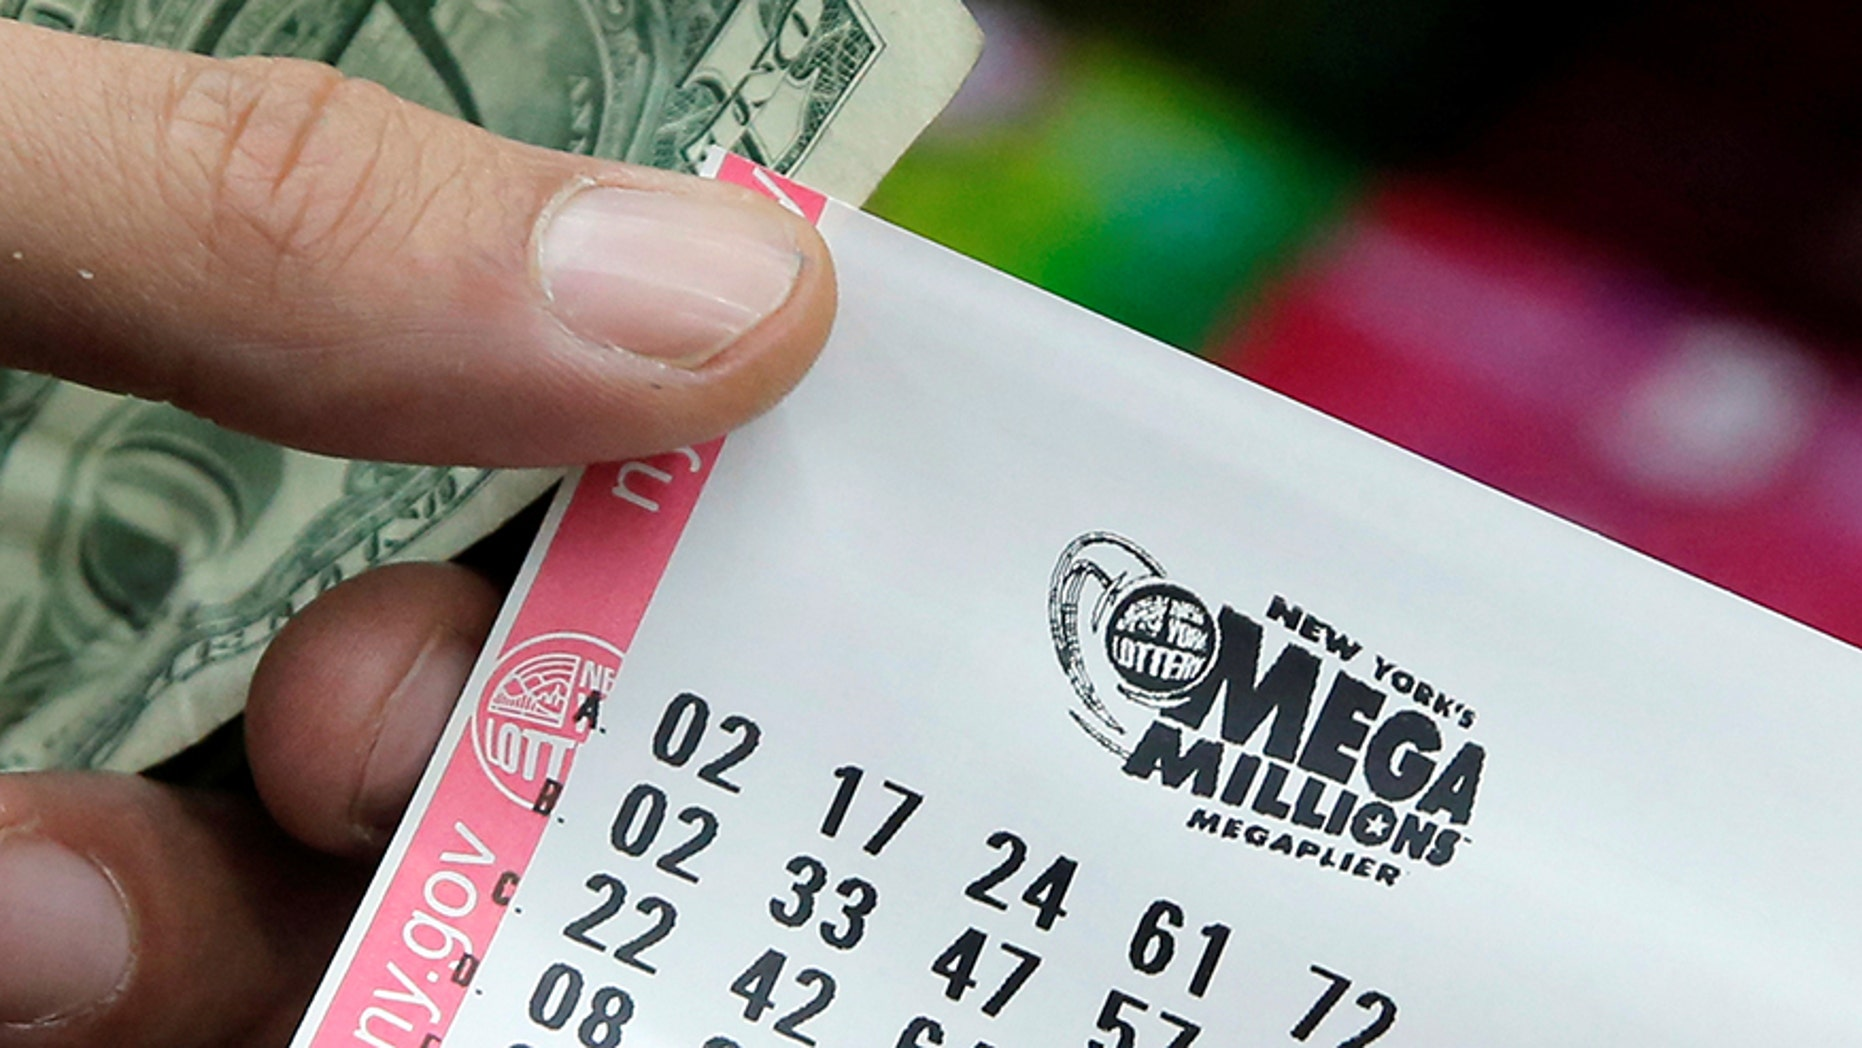 A ticket is seen ahead of the Mega Millions lottery draw in Manhattan, New York, U.S., July 1, 2016.